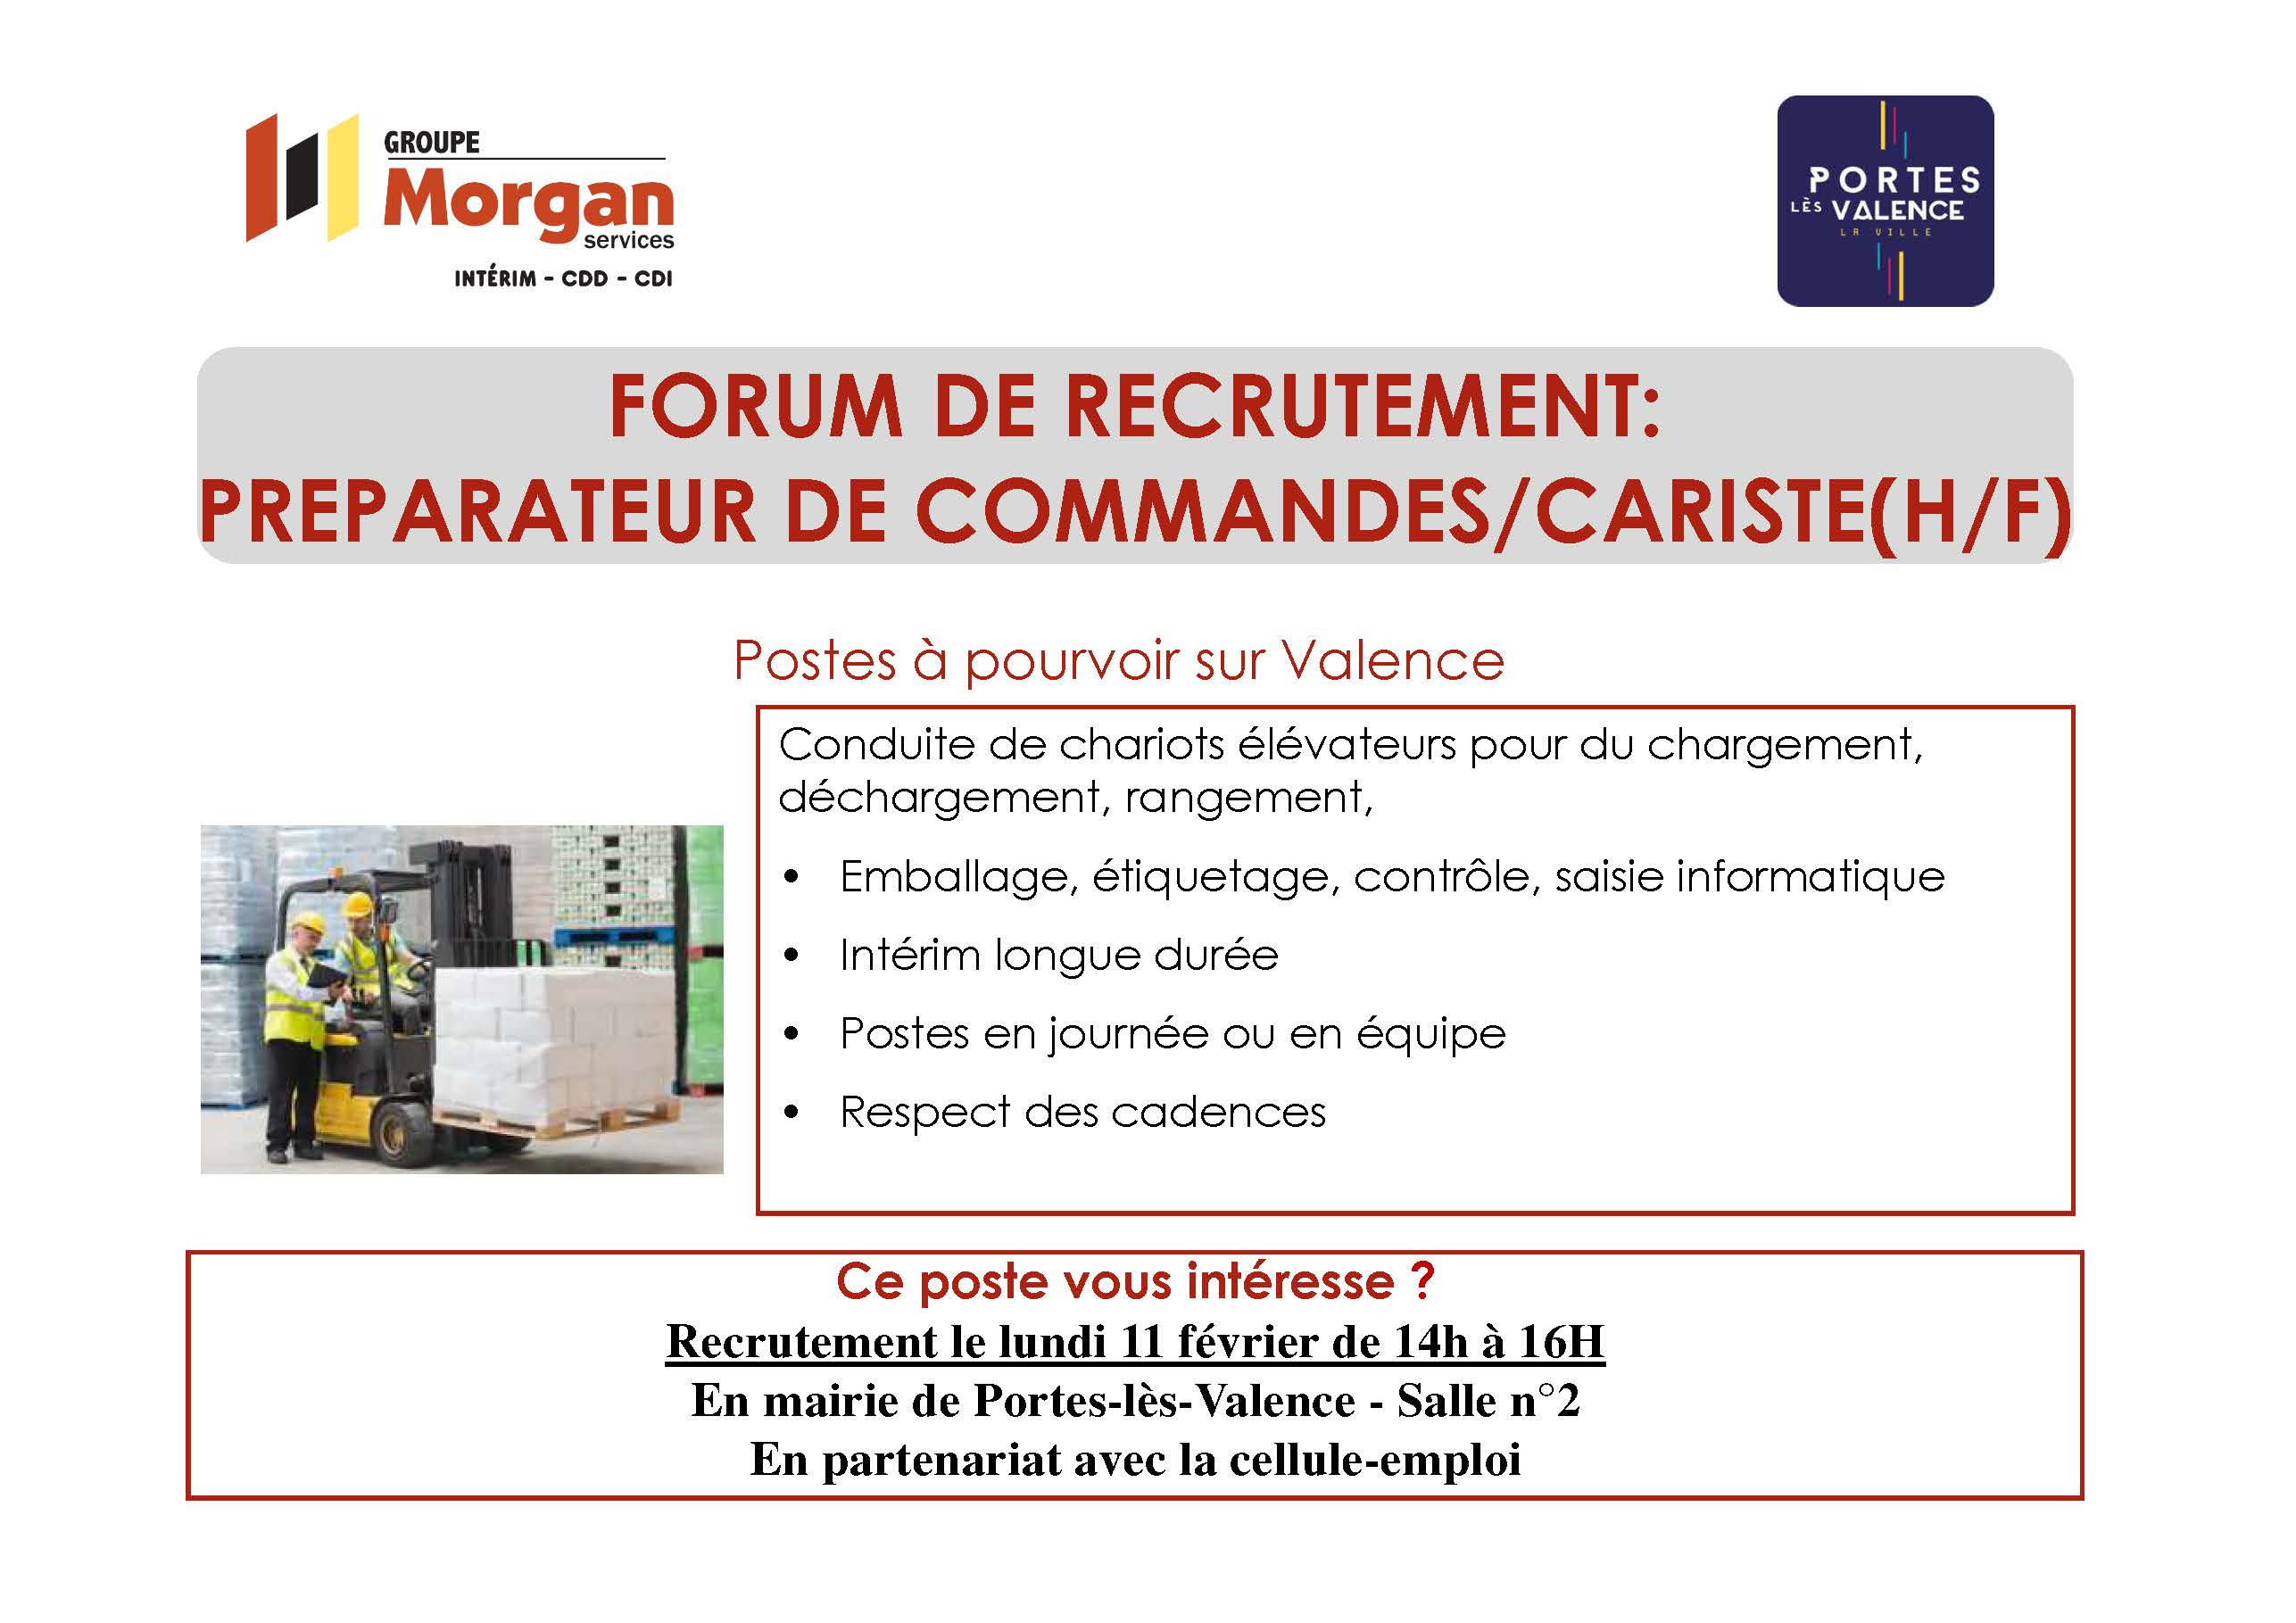 Forum recrutement Morgan Interim